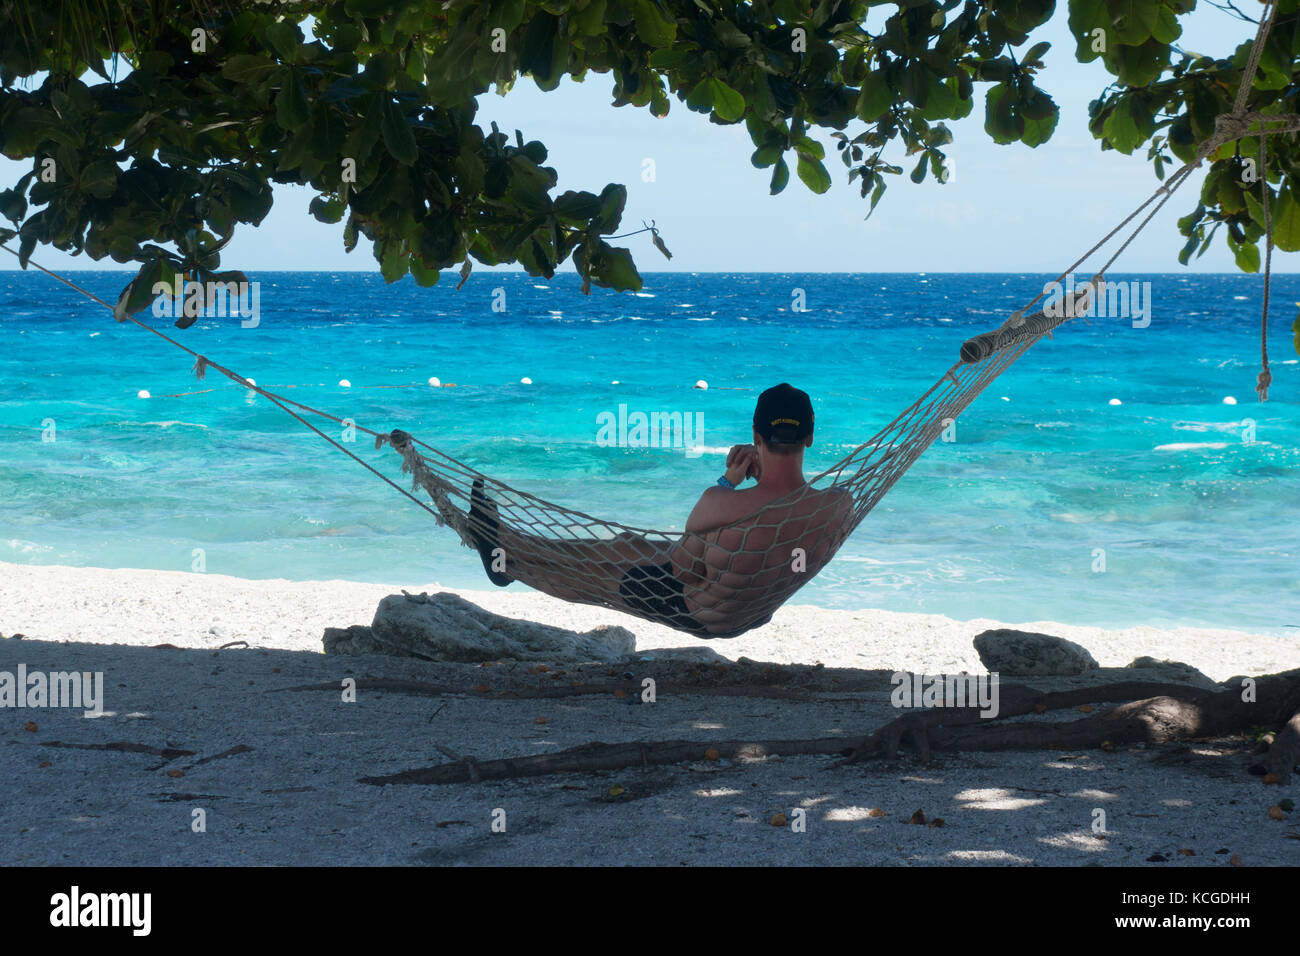 Philippines beach, île de Cebu - un touriste se détendre dans un hamac en vacances, Cebu, Philippines, Photo Stock